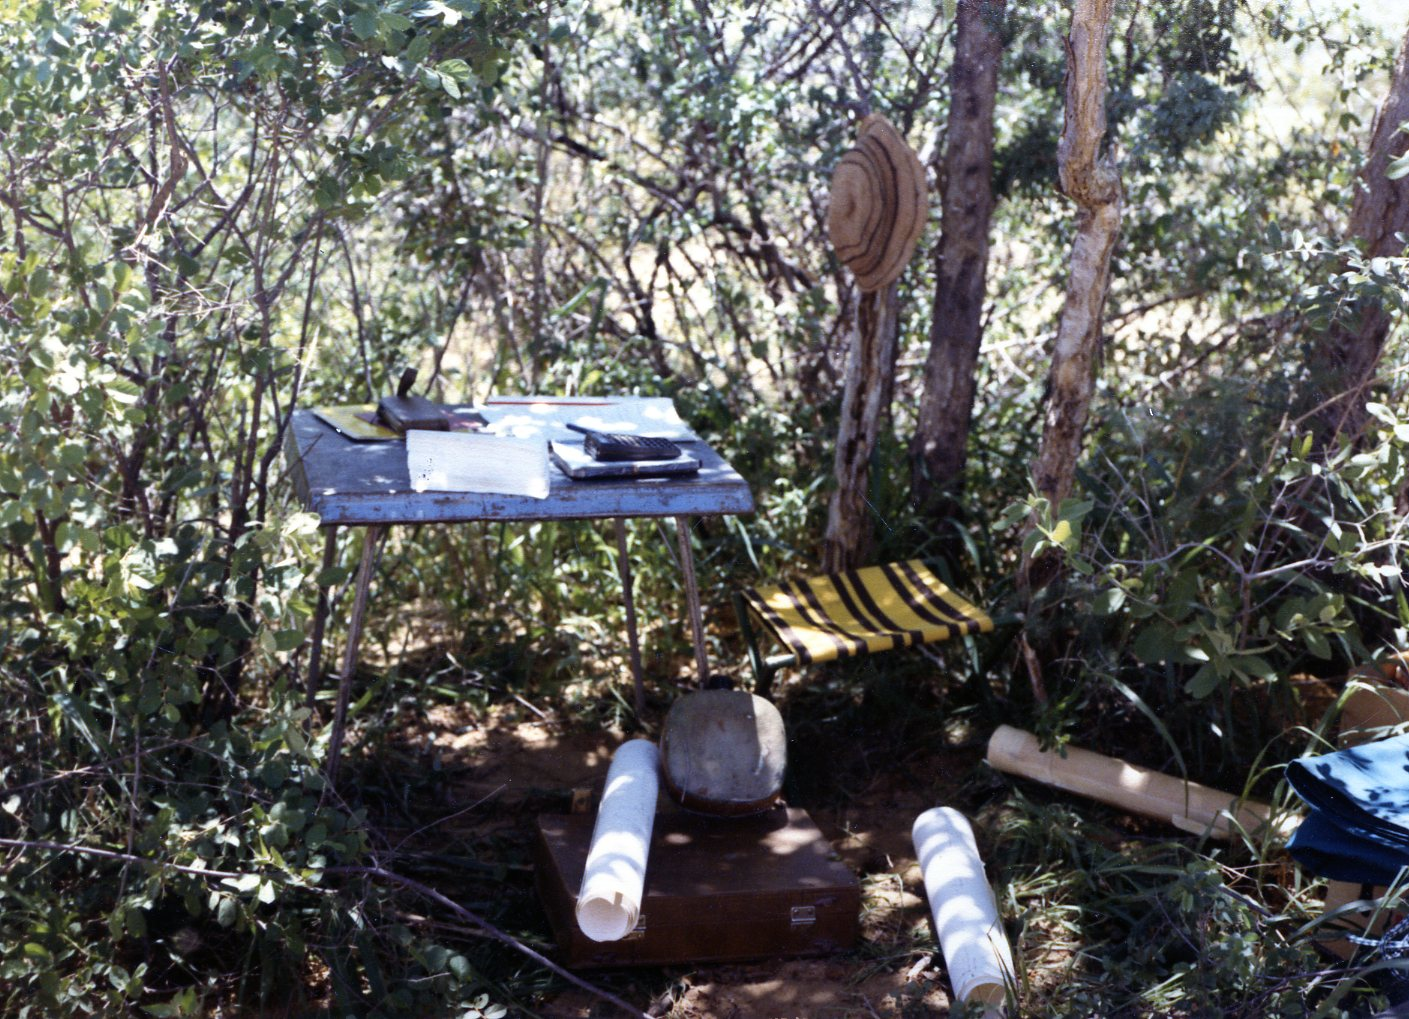 tools for processing survey work on location in Namibia in the 1980's